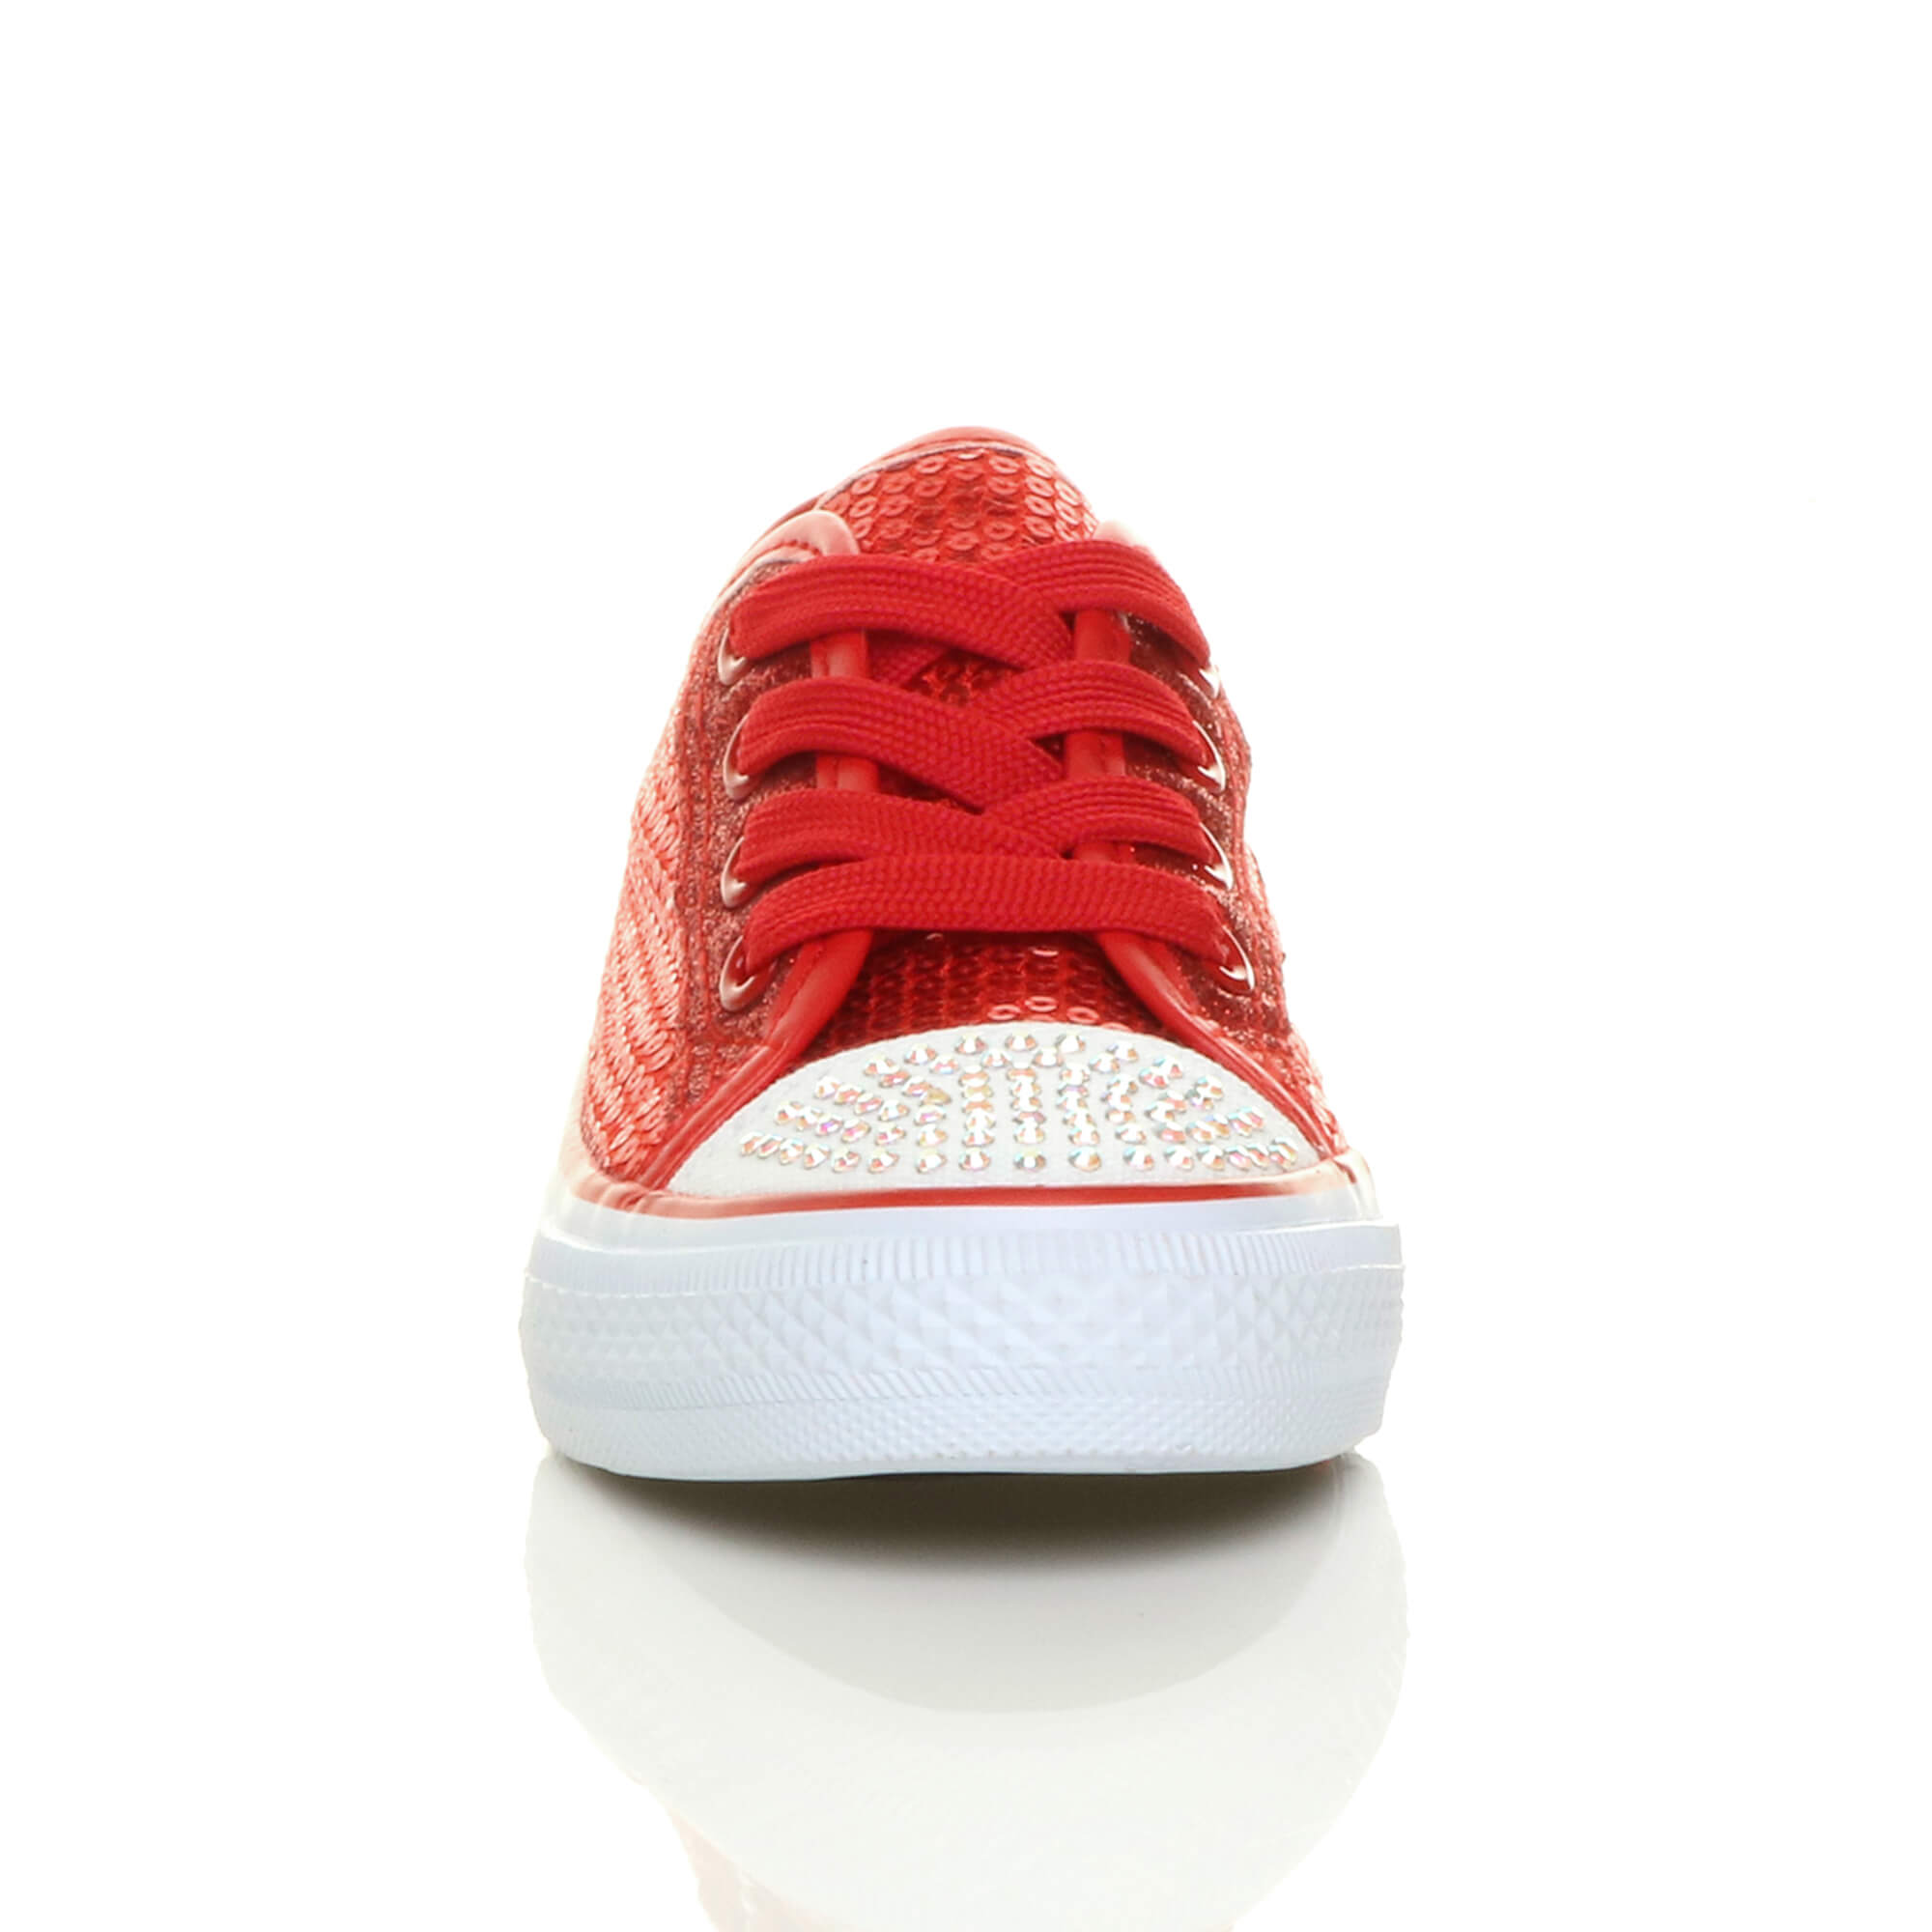 GIRLS-KIDS-CHILDRENS-FLAT-GLITTER-LACE-UP-PLIMSOLES-TRAINERS-SNEAKERS-SIZE